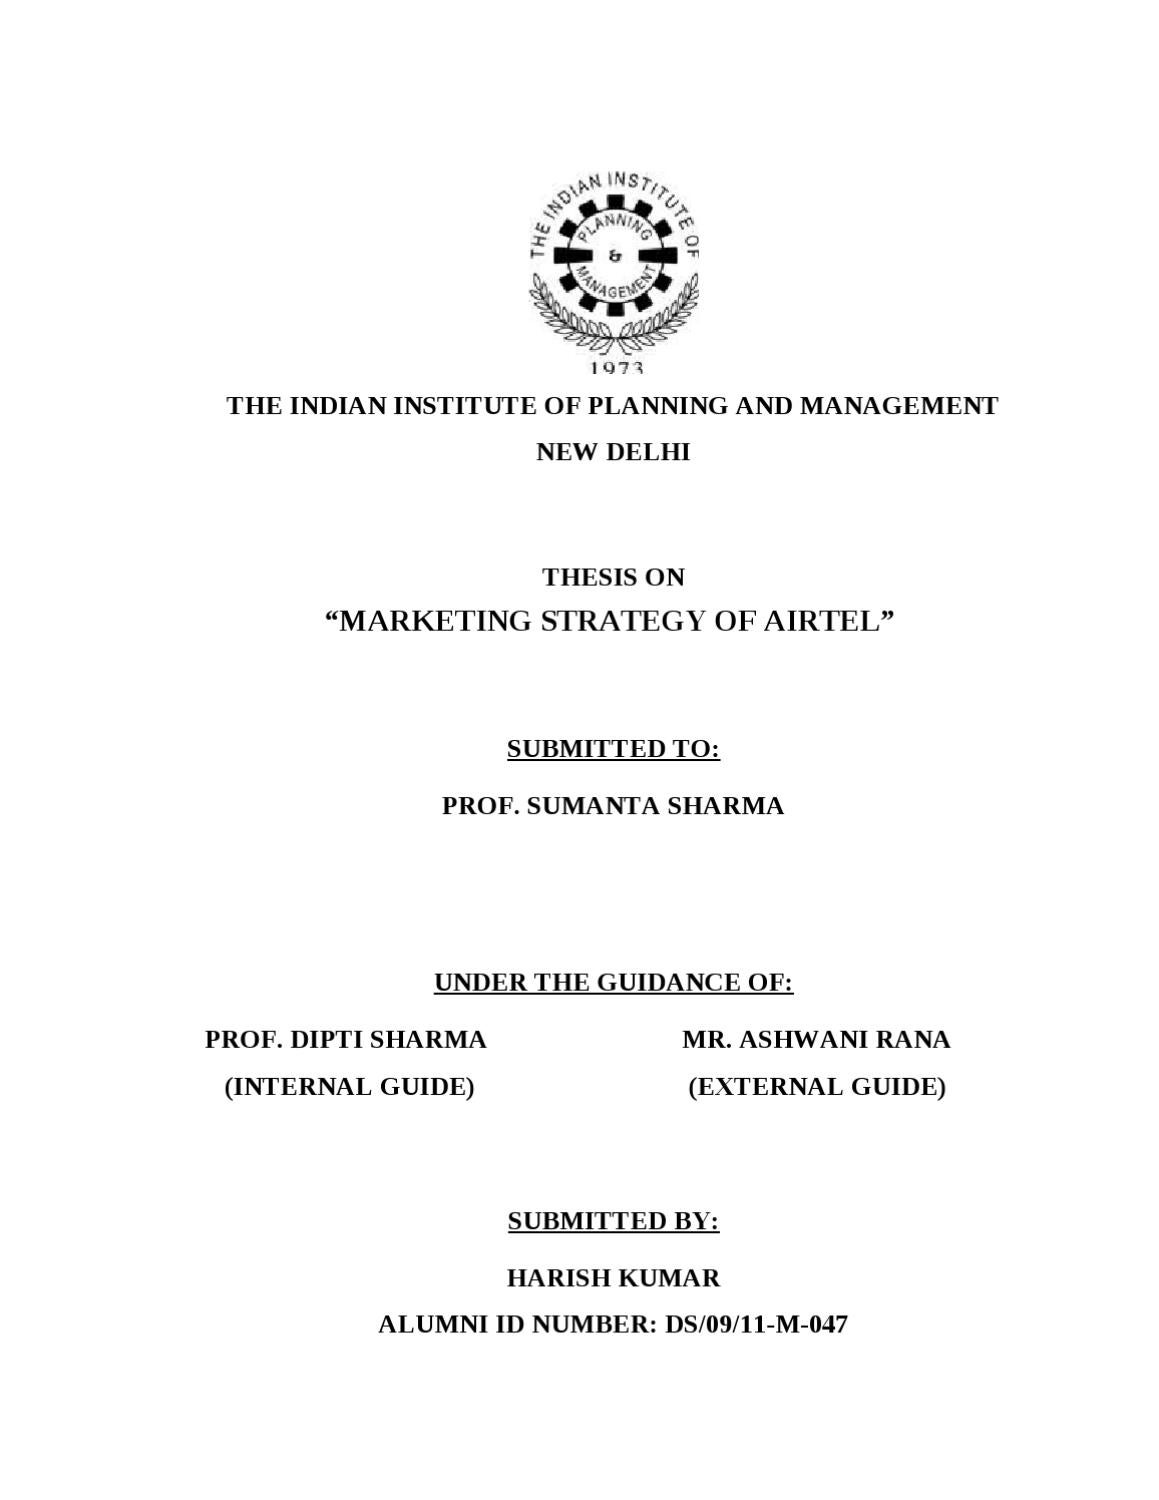 Is it a good title for dissertation ' brand awareness of Airtel?